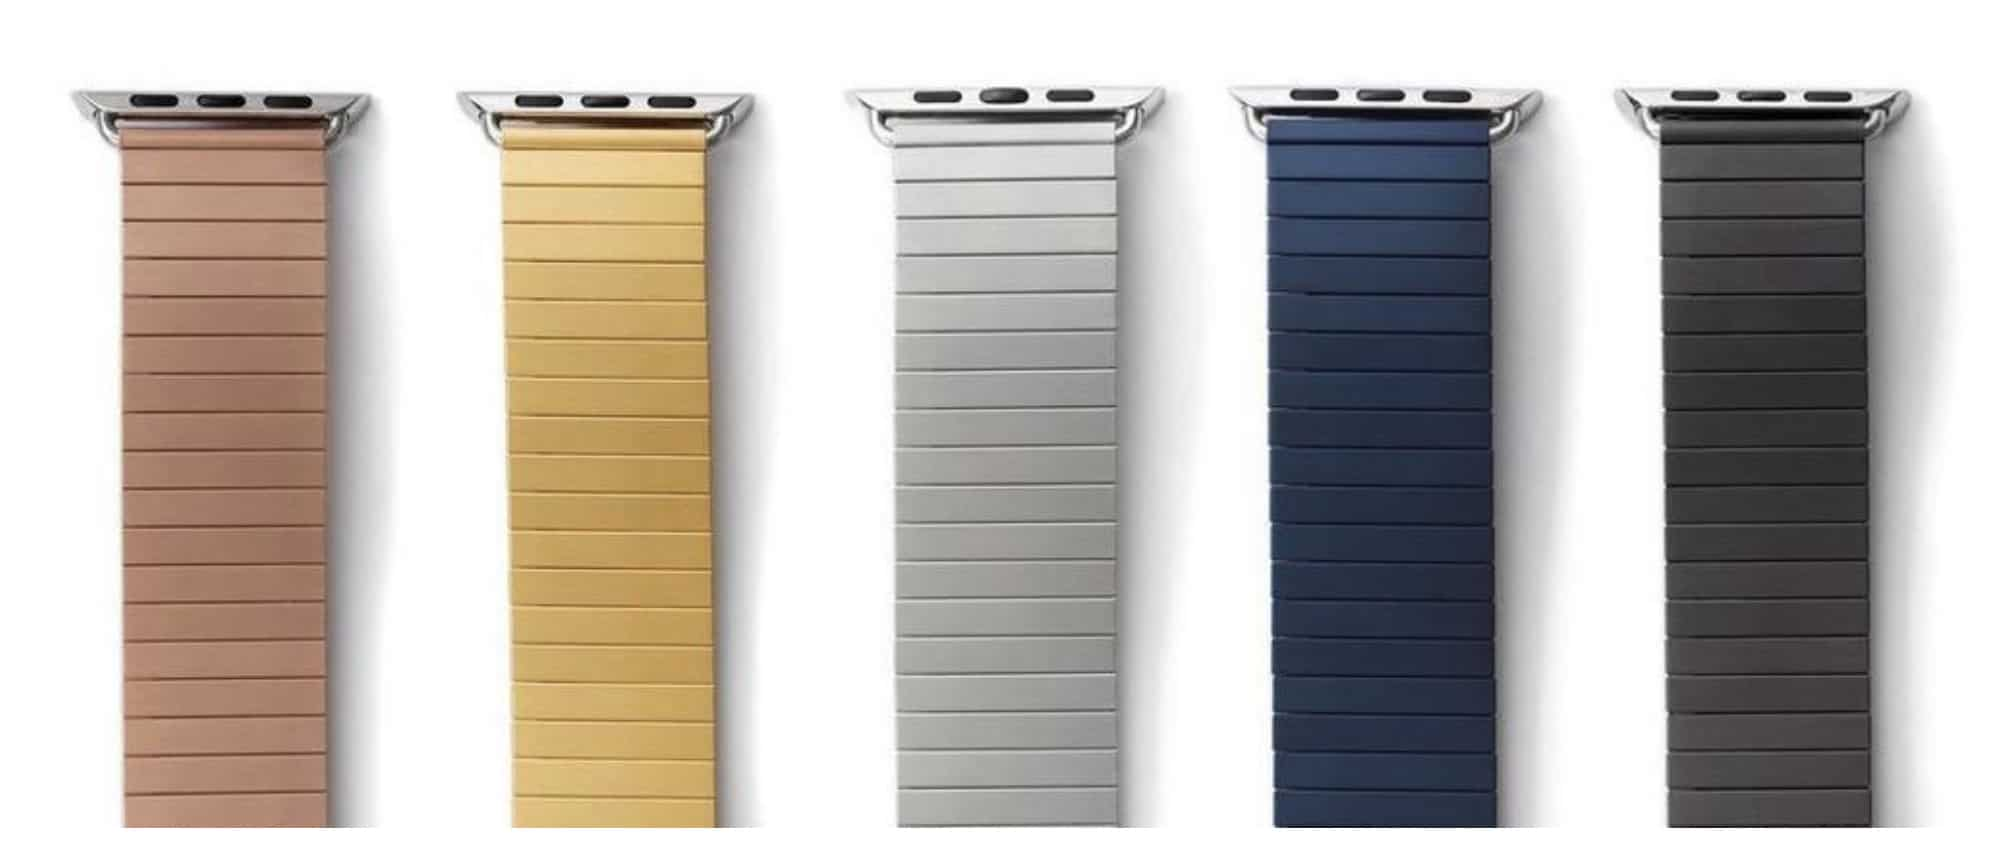 Rilee & Lo Apple watch band colors: rose gold, gold, silver, navy, black